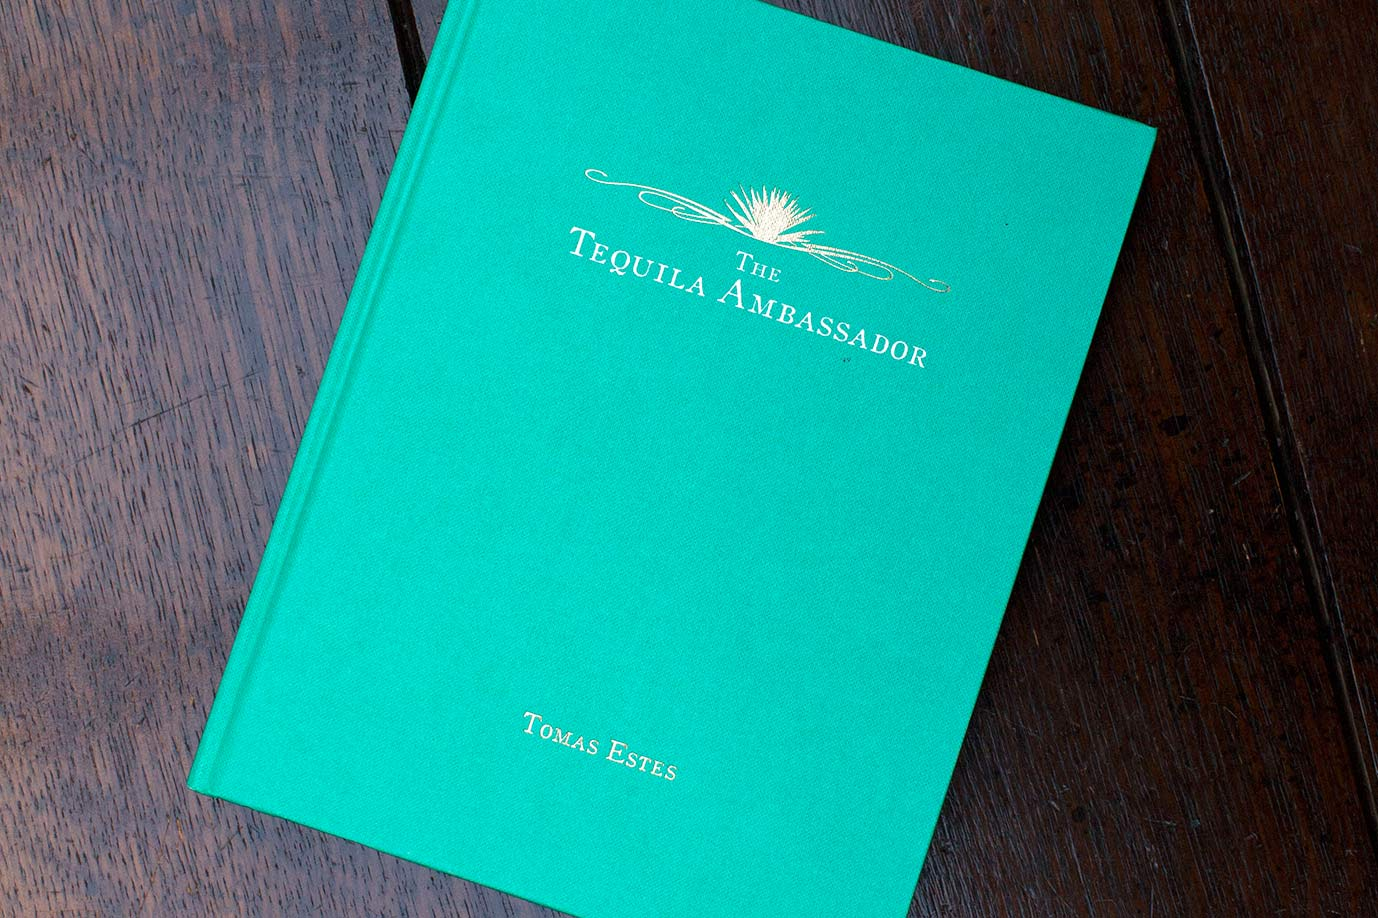 the tequila ambassador book image